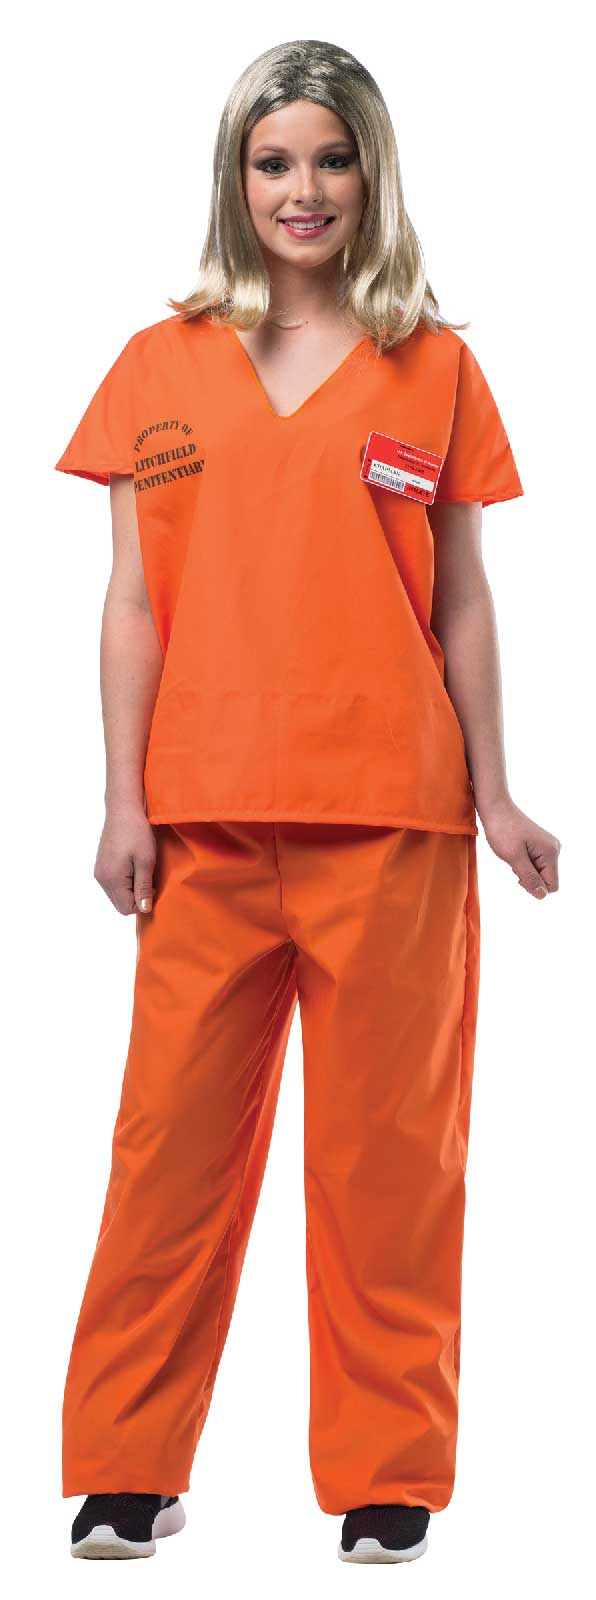 Excellent Women In Prison Jumpsuits Pictures To Pin On Pinterest - PinsDaddy